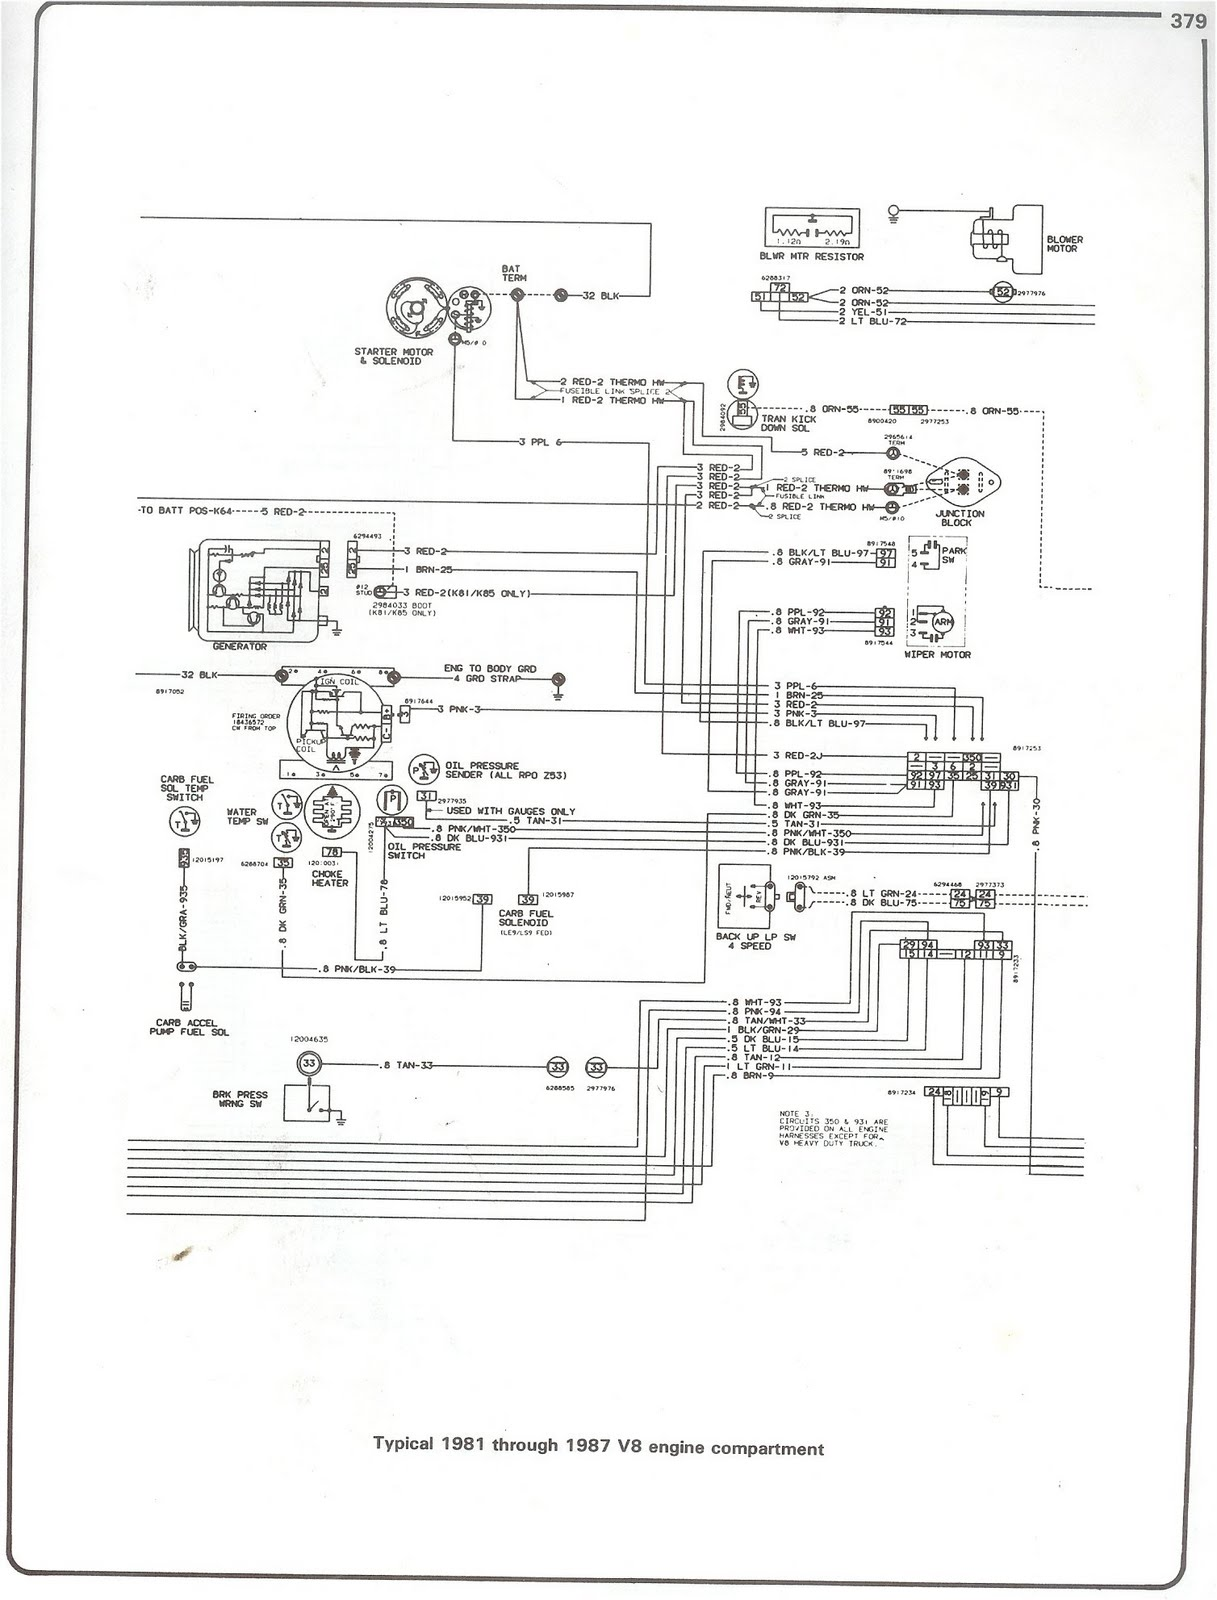 medium resolution of 1976 chevy truck wiring diagram wiring diagram perfomance 1976 chevy truck wiring harness diagram 1976 circuit diagrams